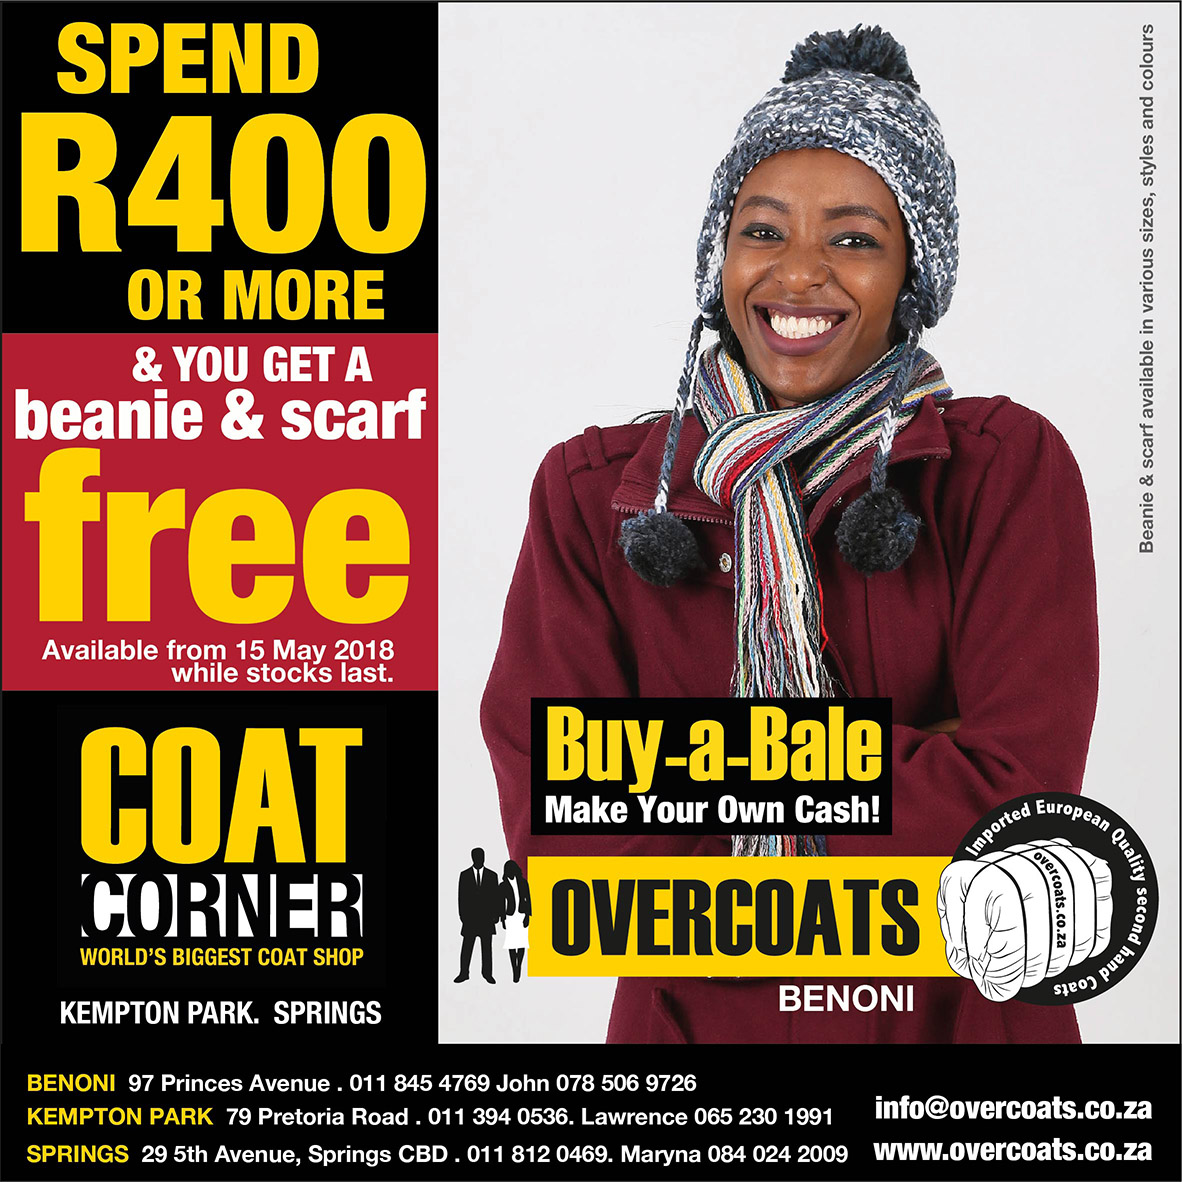 Second hand Womens coats and Jackets for sale in bales. Business Opportunity!